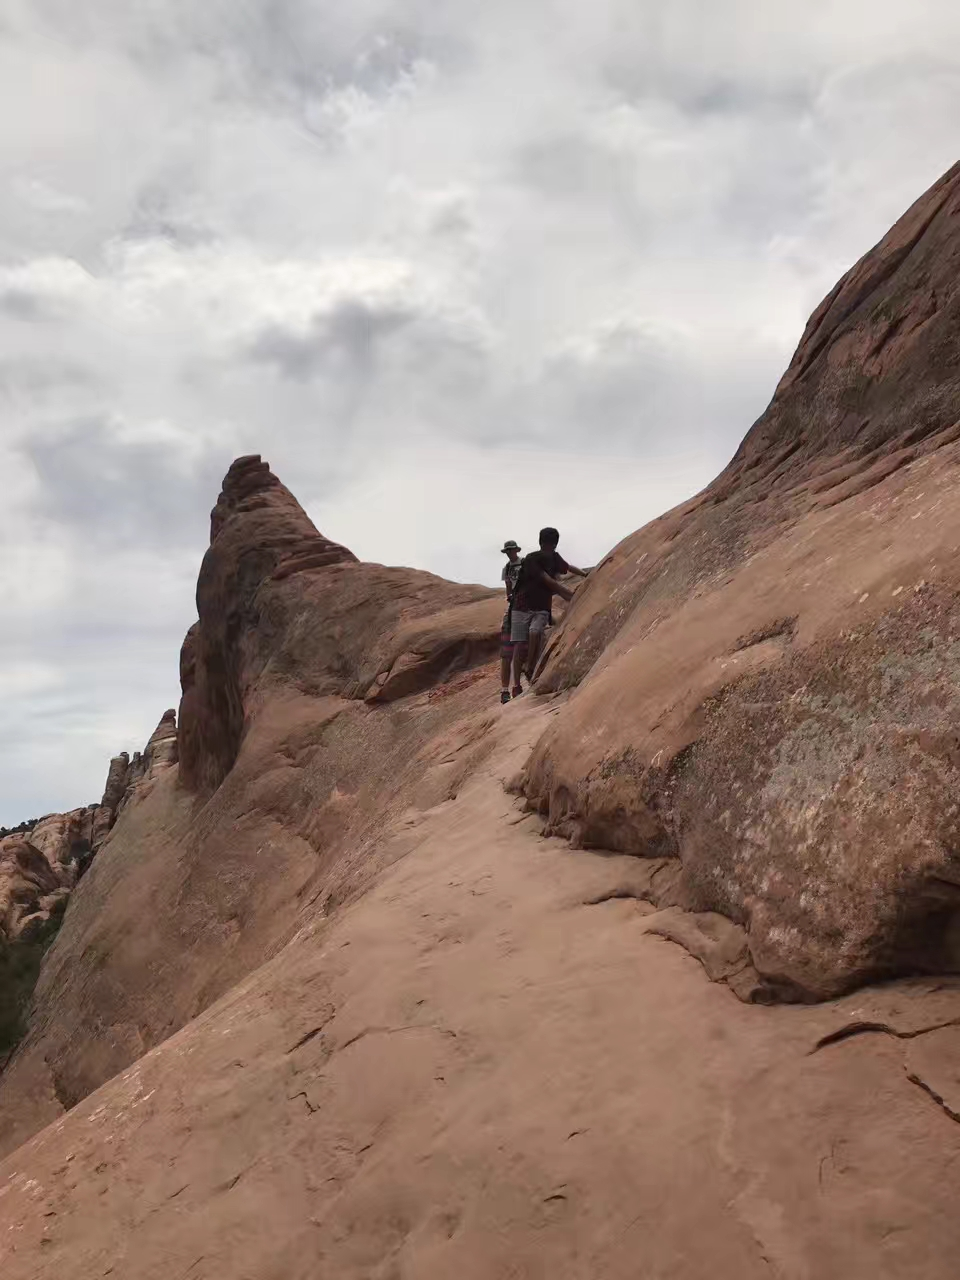 Me holding on to the rocks while getting over an almost vertical cliff